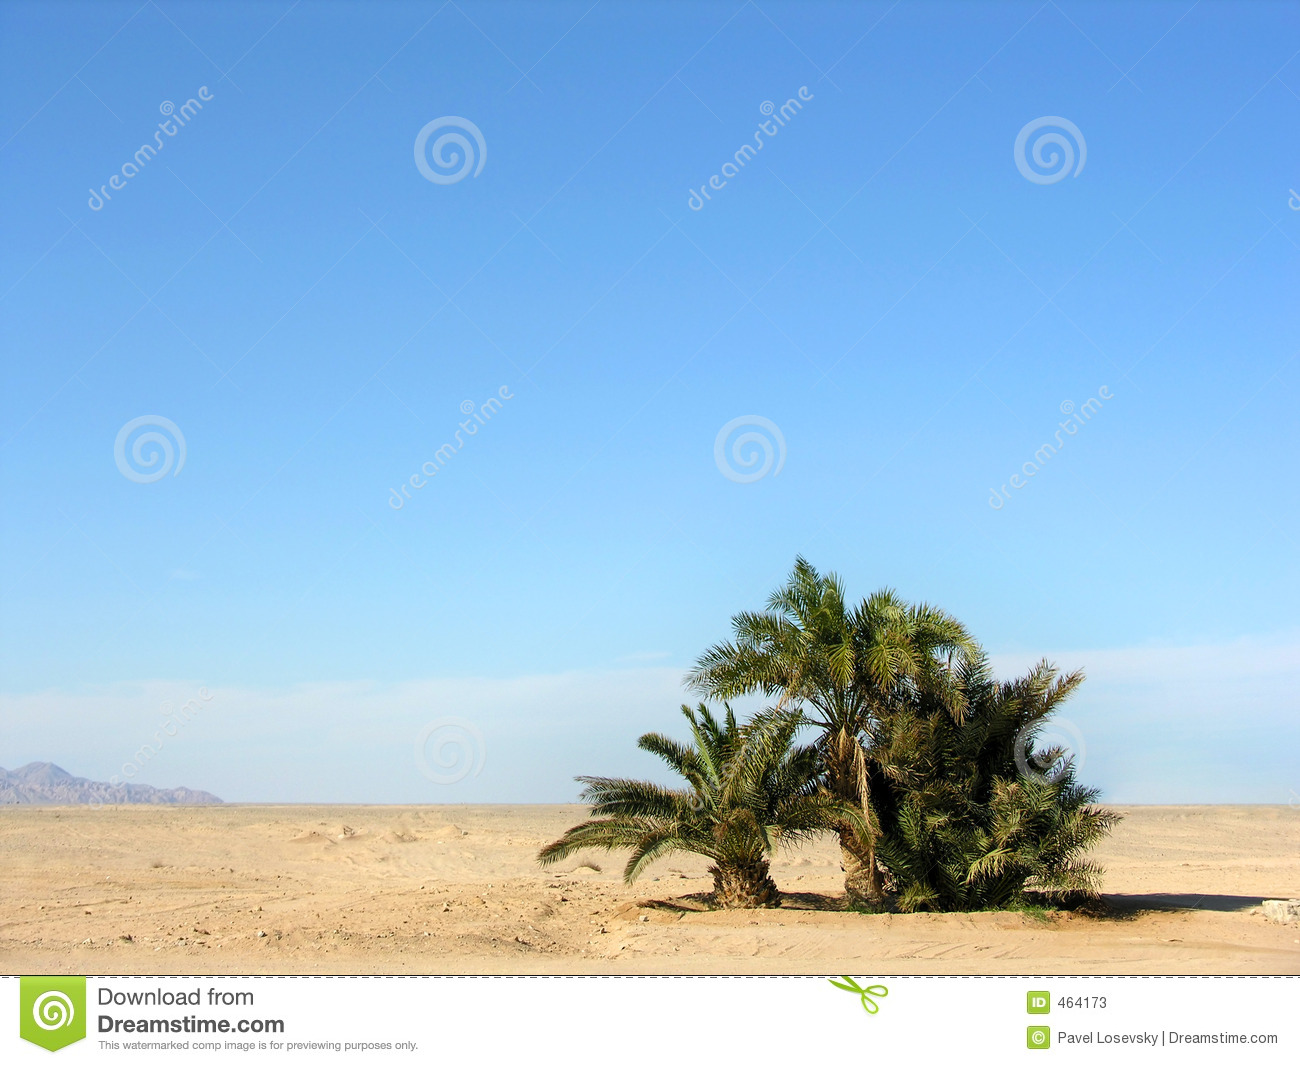 Download Oasis in desert stock image. Image of dune, isolated, distant - 464173